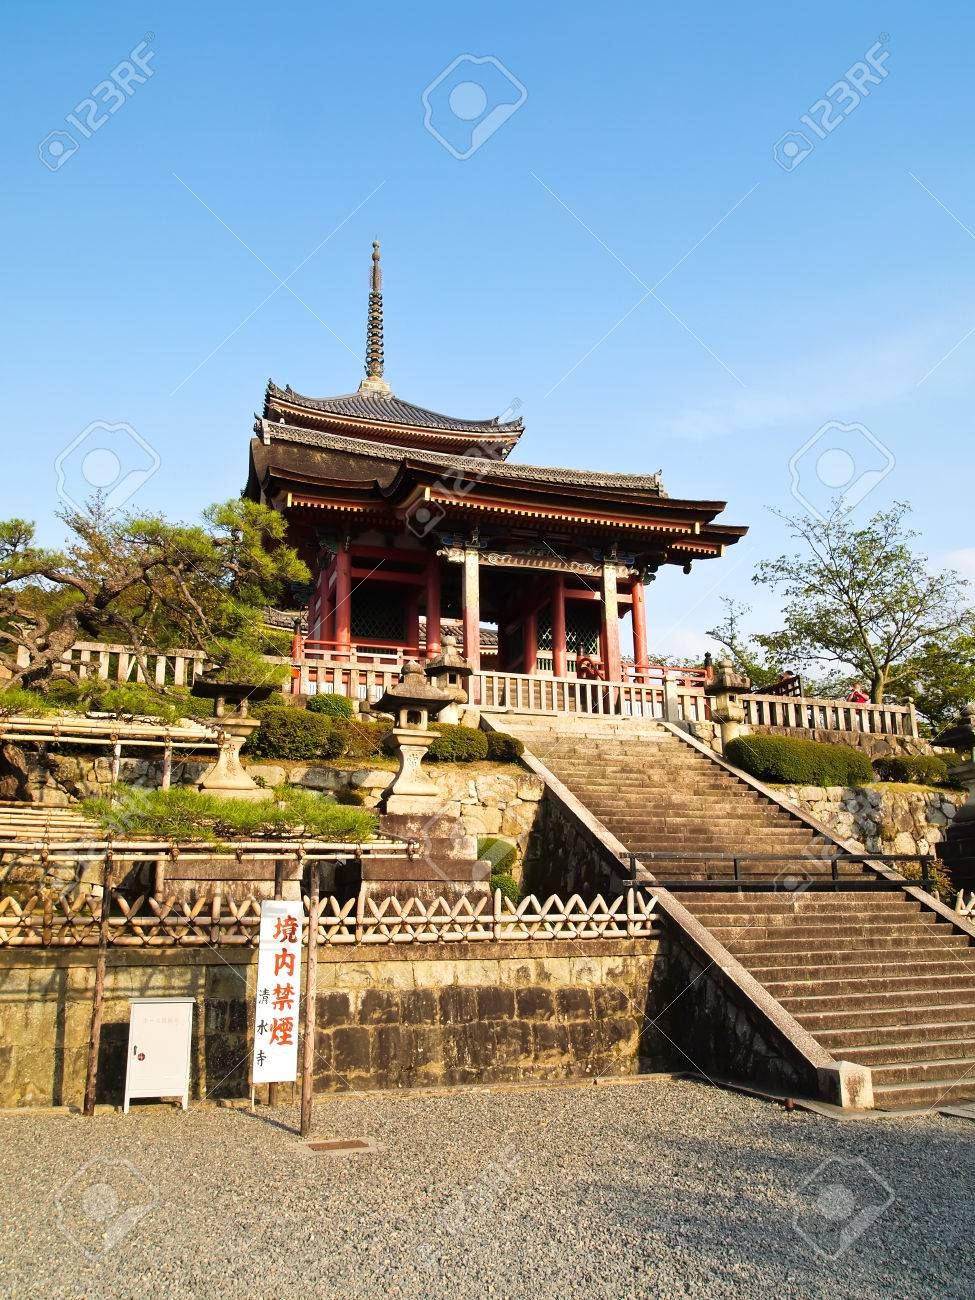 kiyomizudera is best known for its wooden stage temples the